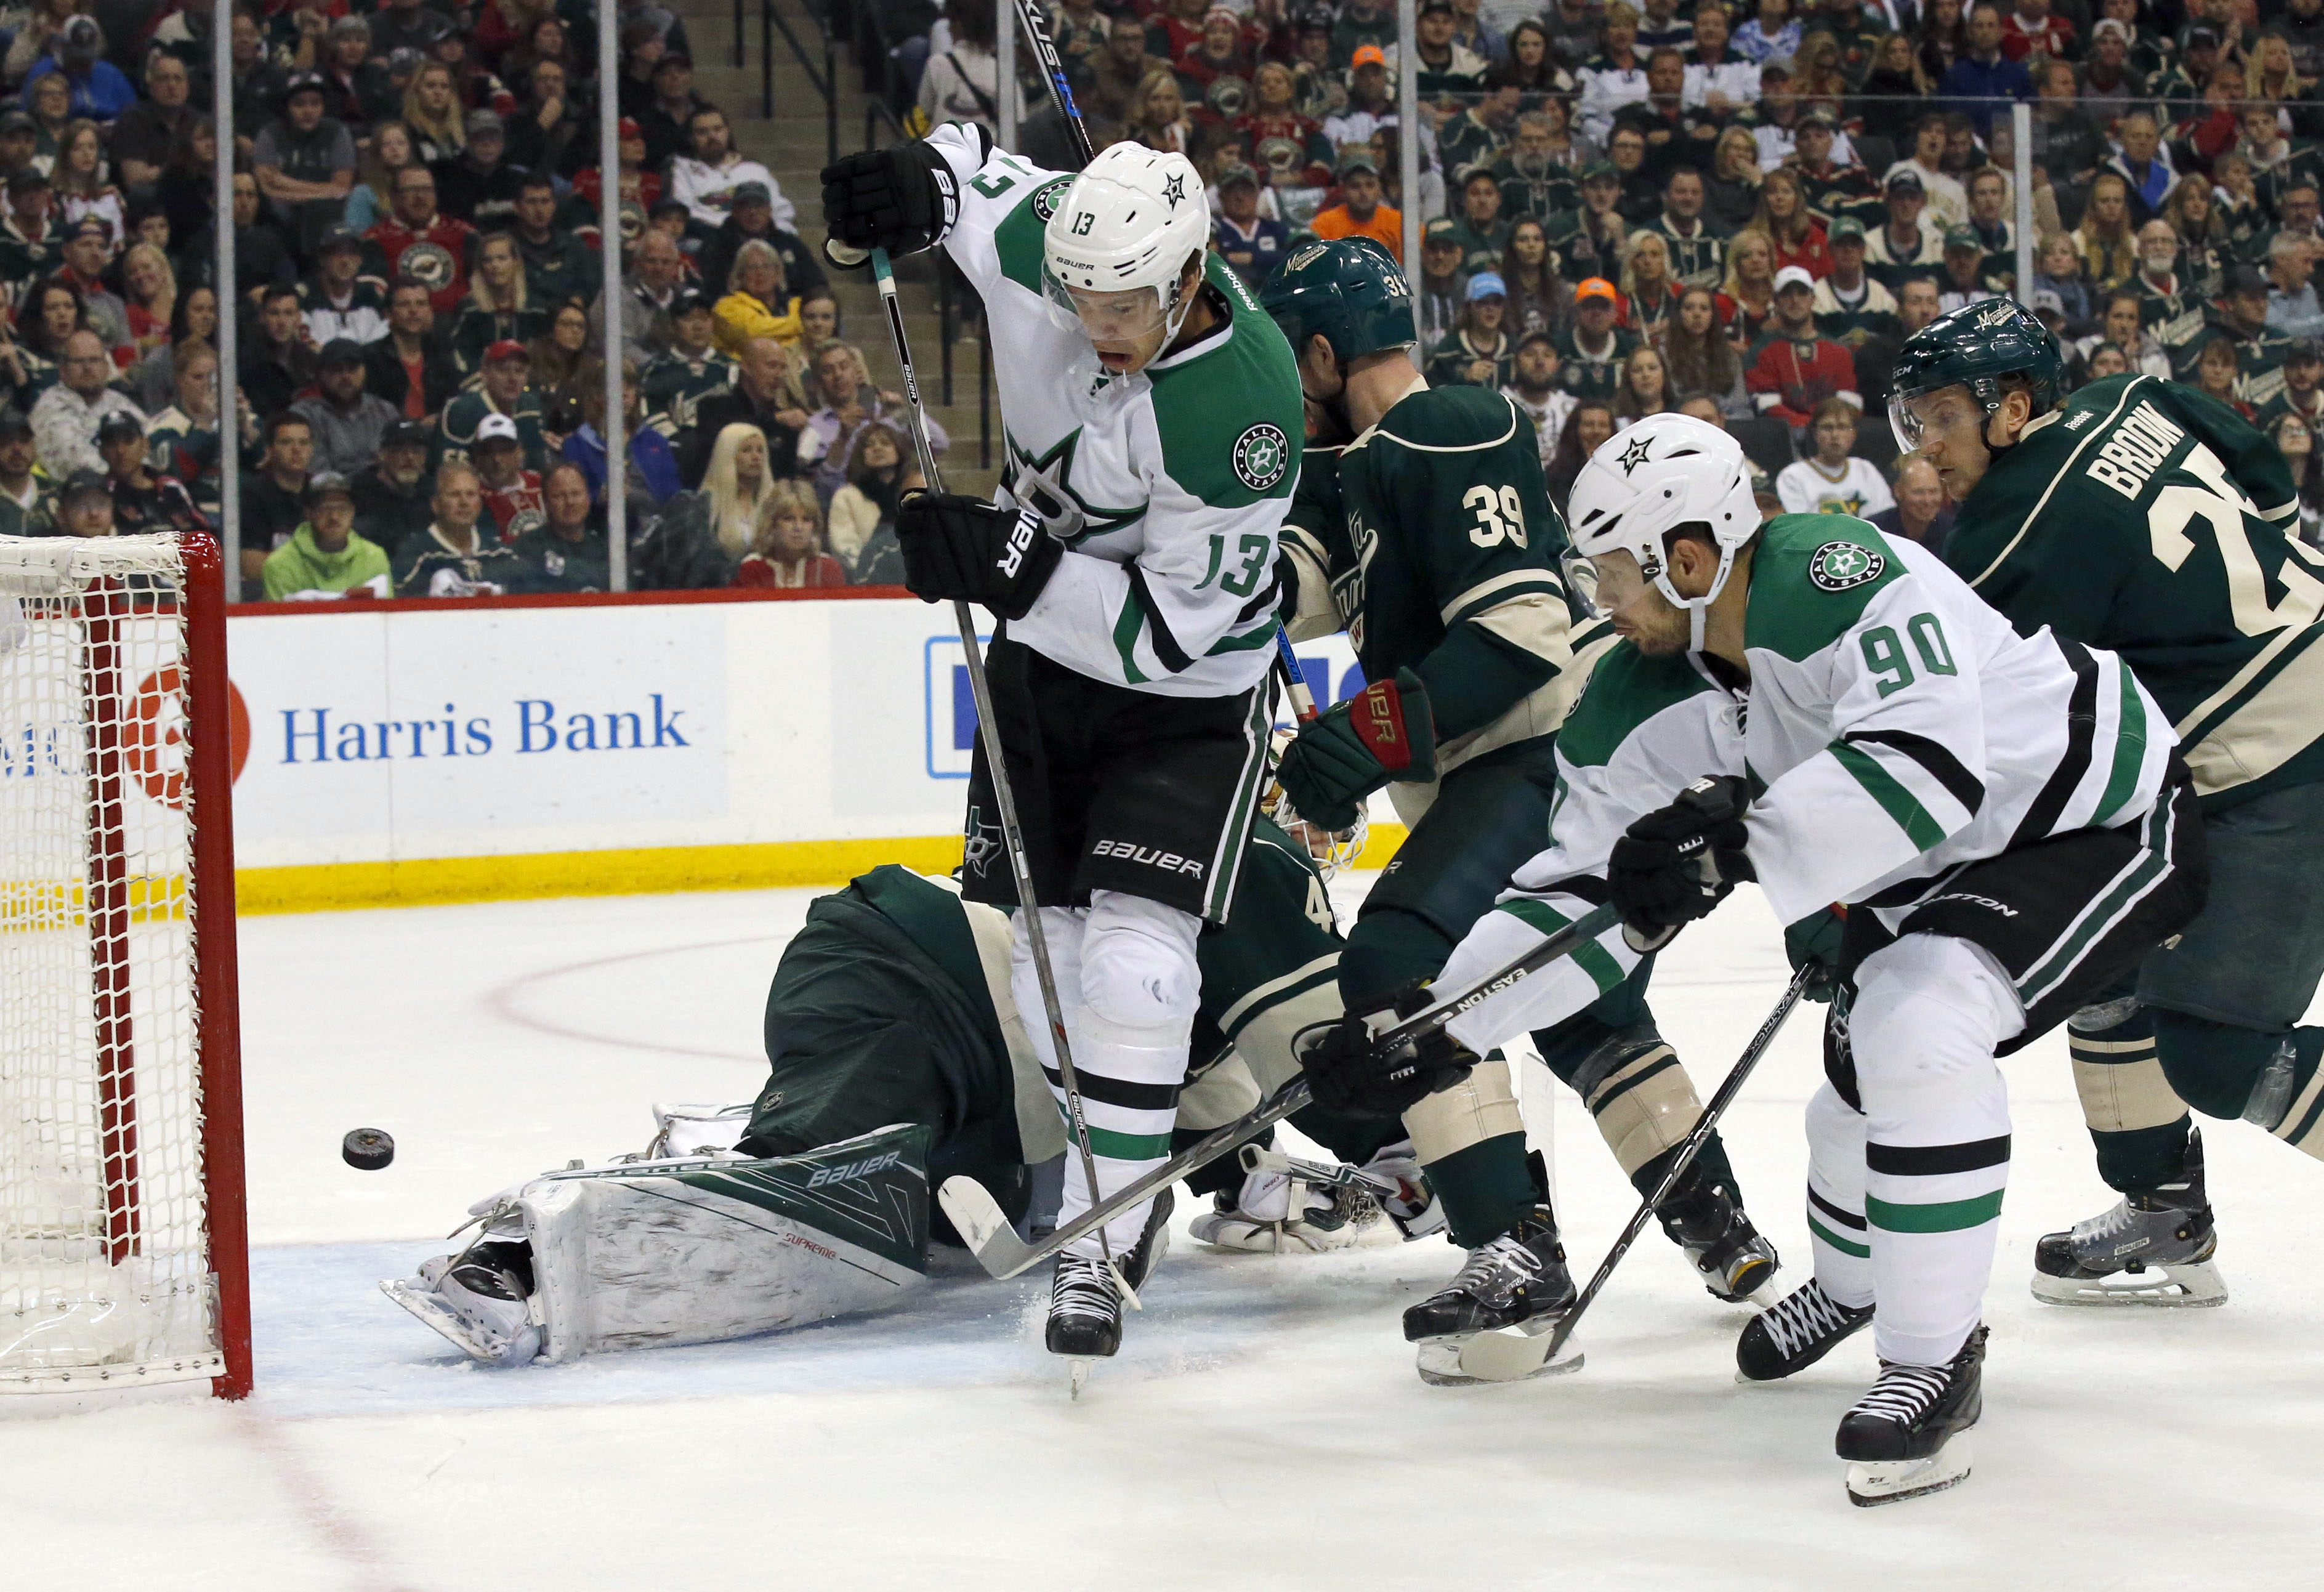 Dallas Stars center Jason Spezza (90) scores on Minnesota Wild goalie Devan Dubnyk past Stars teammate Mattias Janmark (13) during the first period of Game 6 in the first round of the NHL Stanley Cup hockey playoffs in St. Paul, Minn., Sunday, April 24, 2